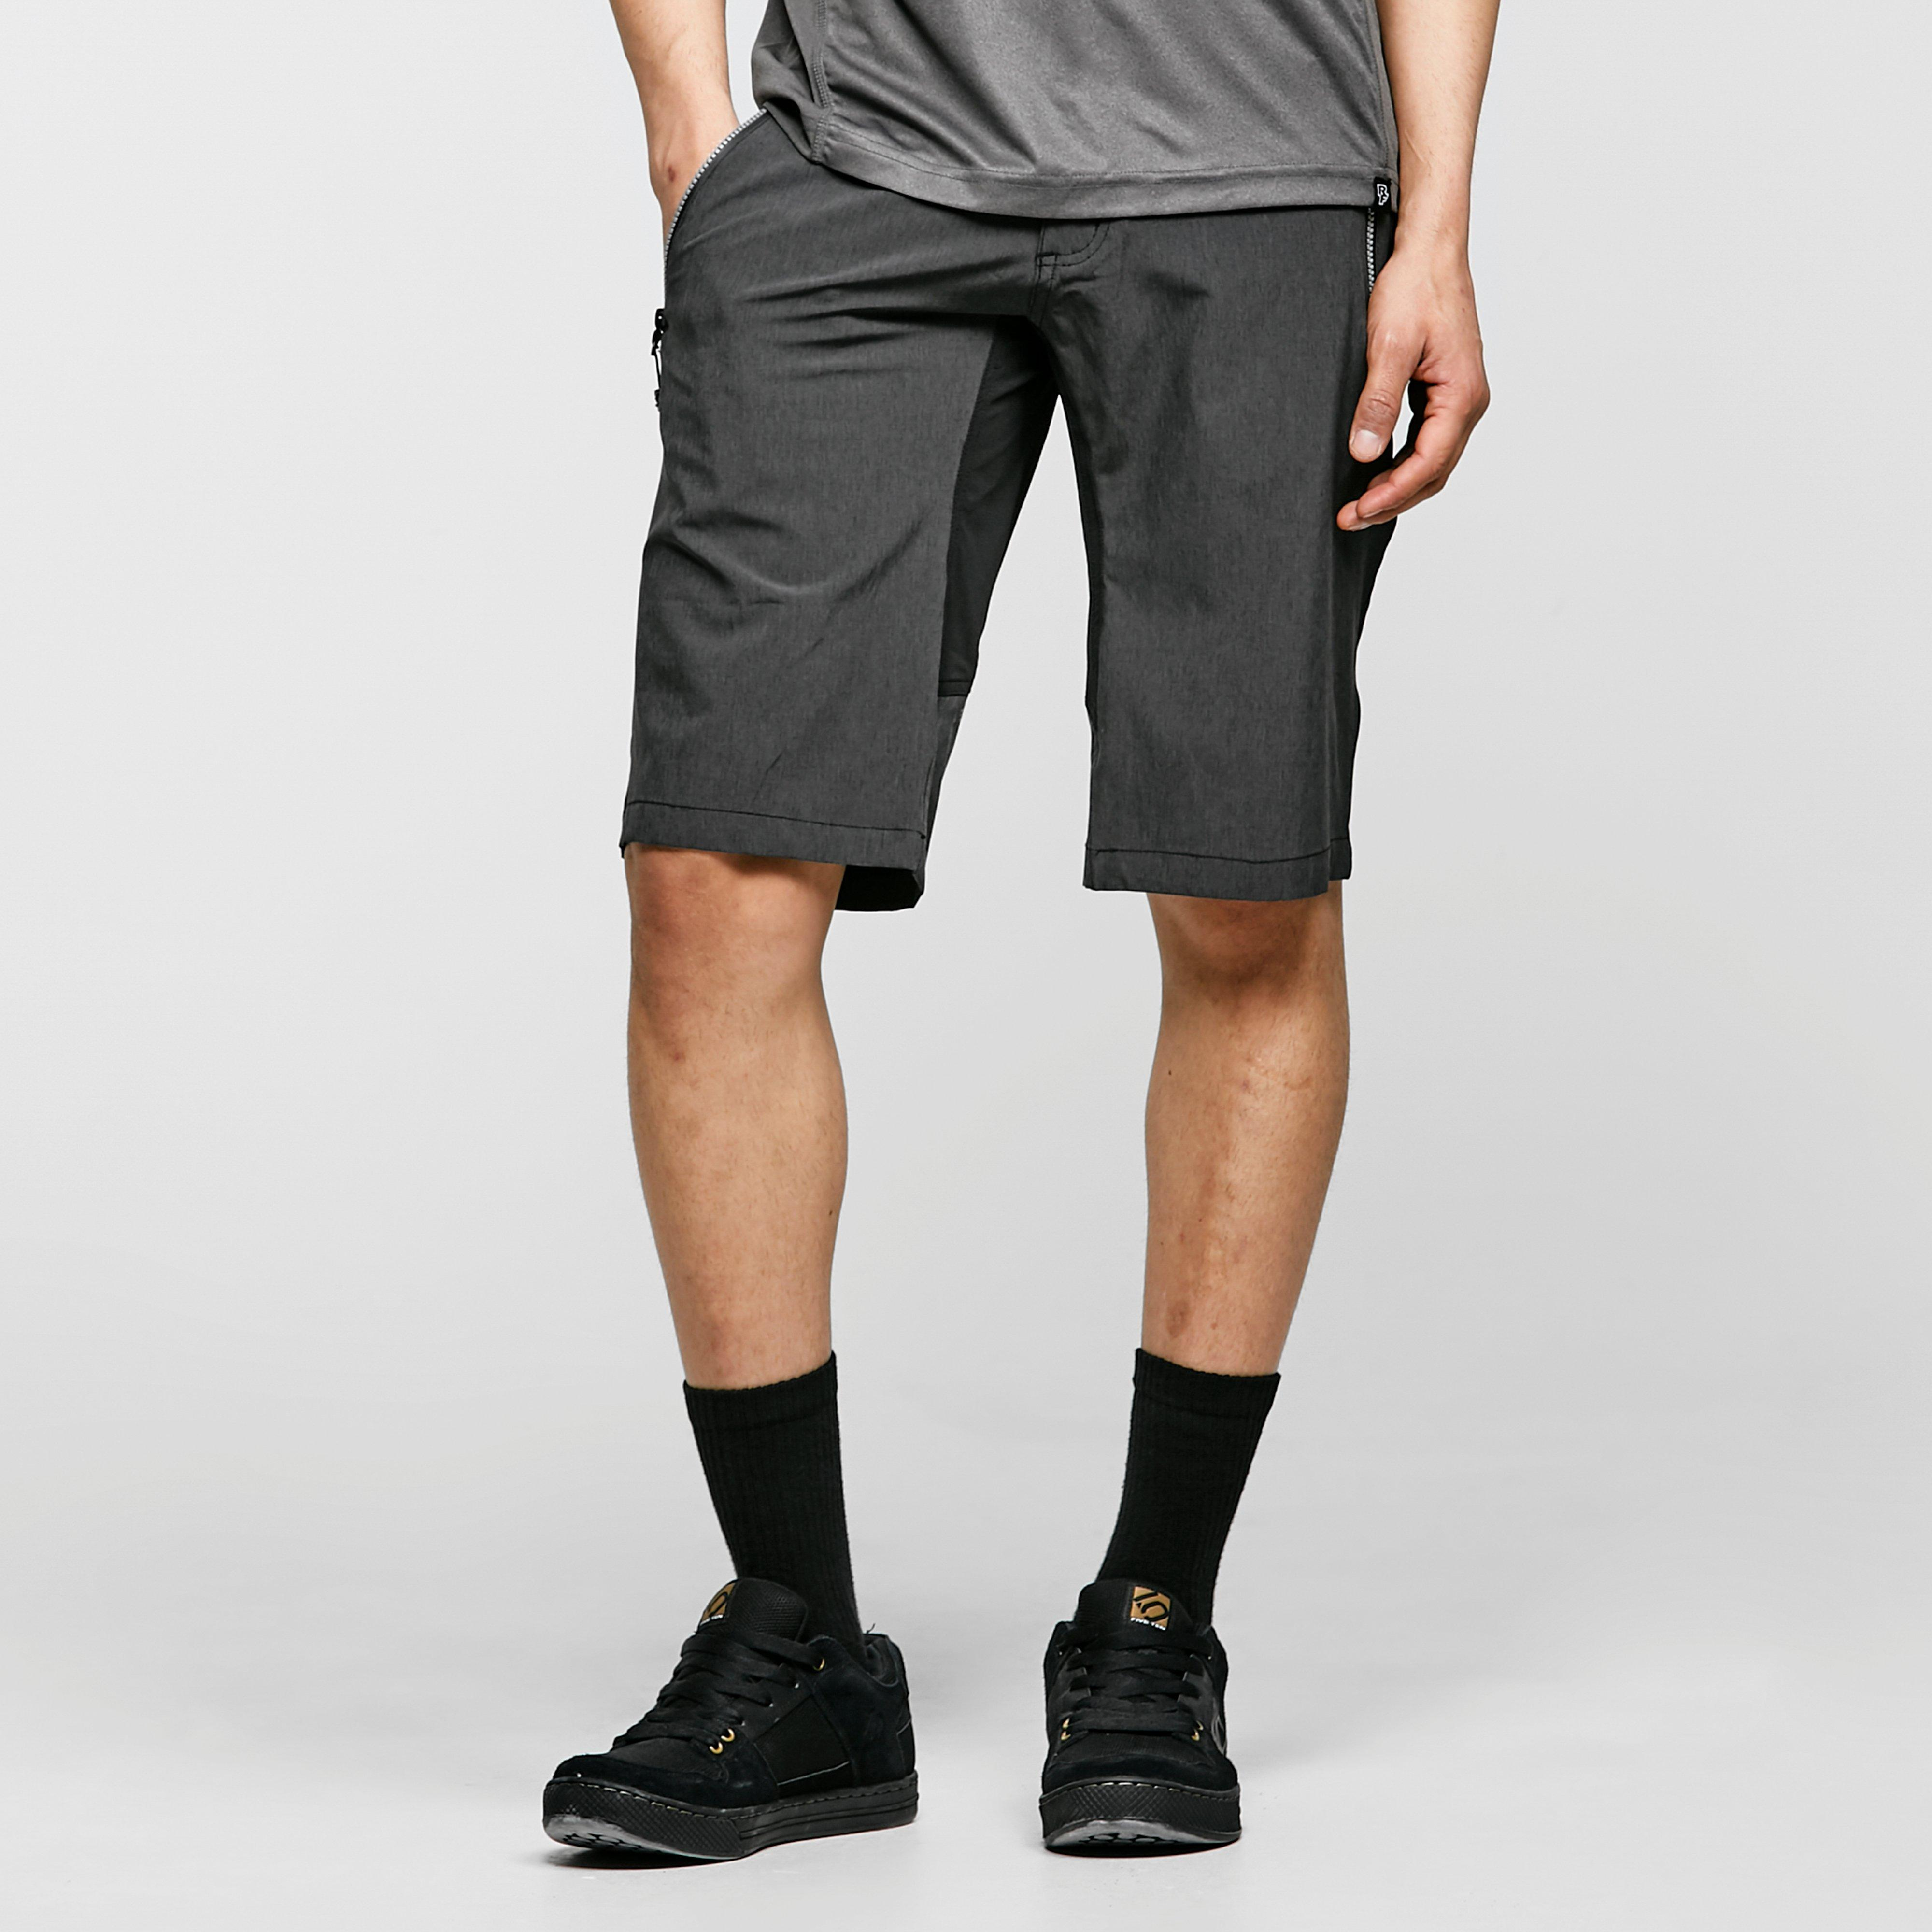 Raceface Raceface Mens Stage Shorts - Grey, Grey